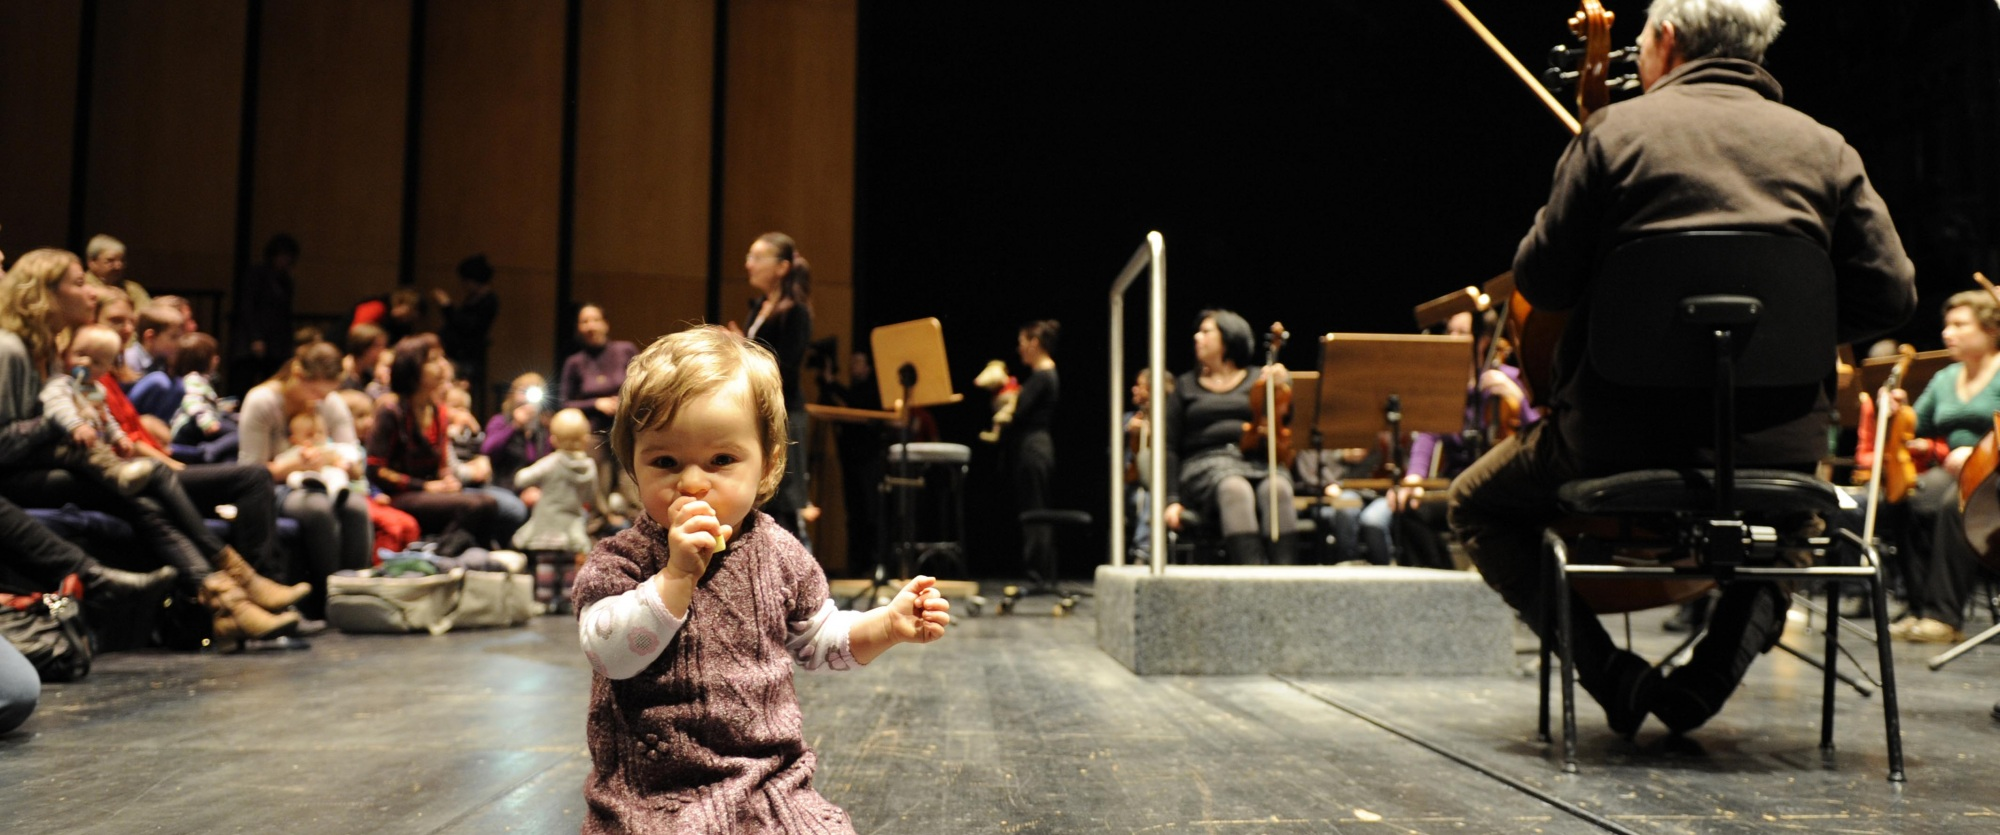 Concerts for youngsters